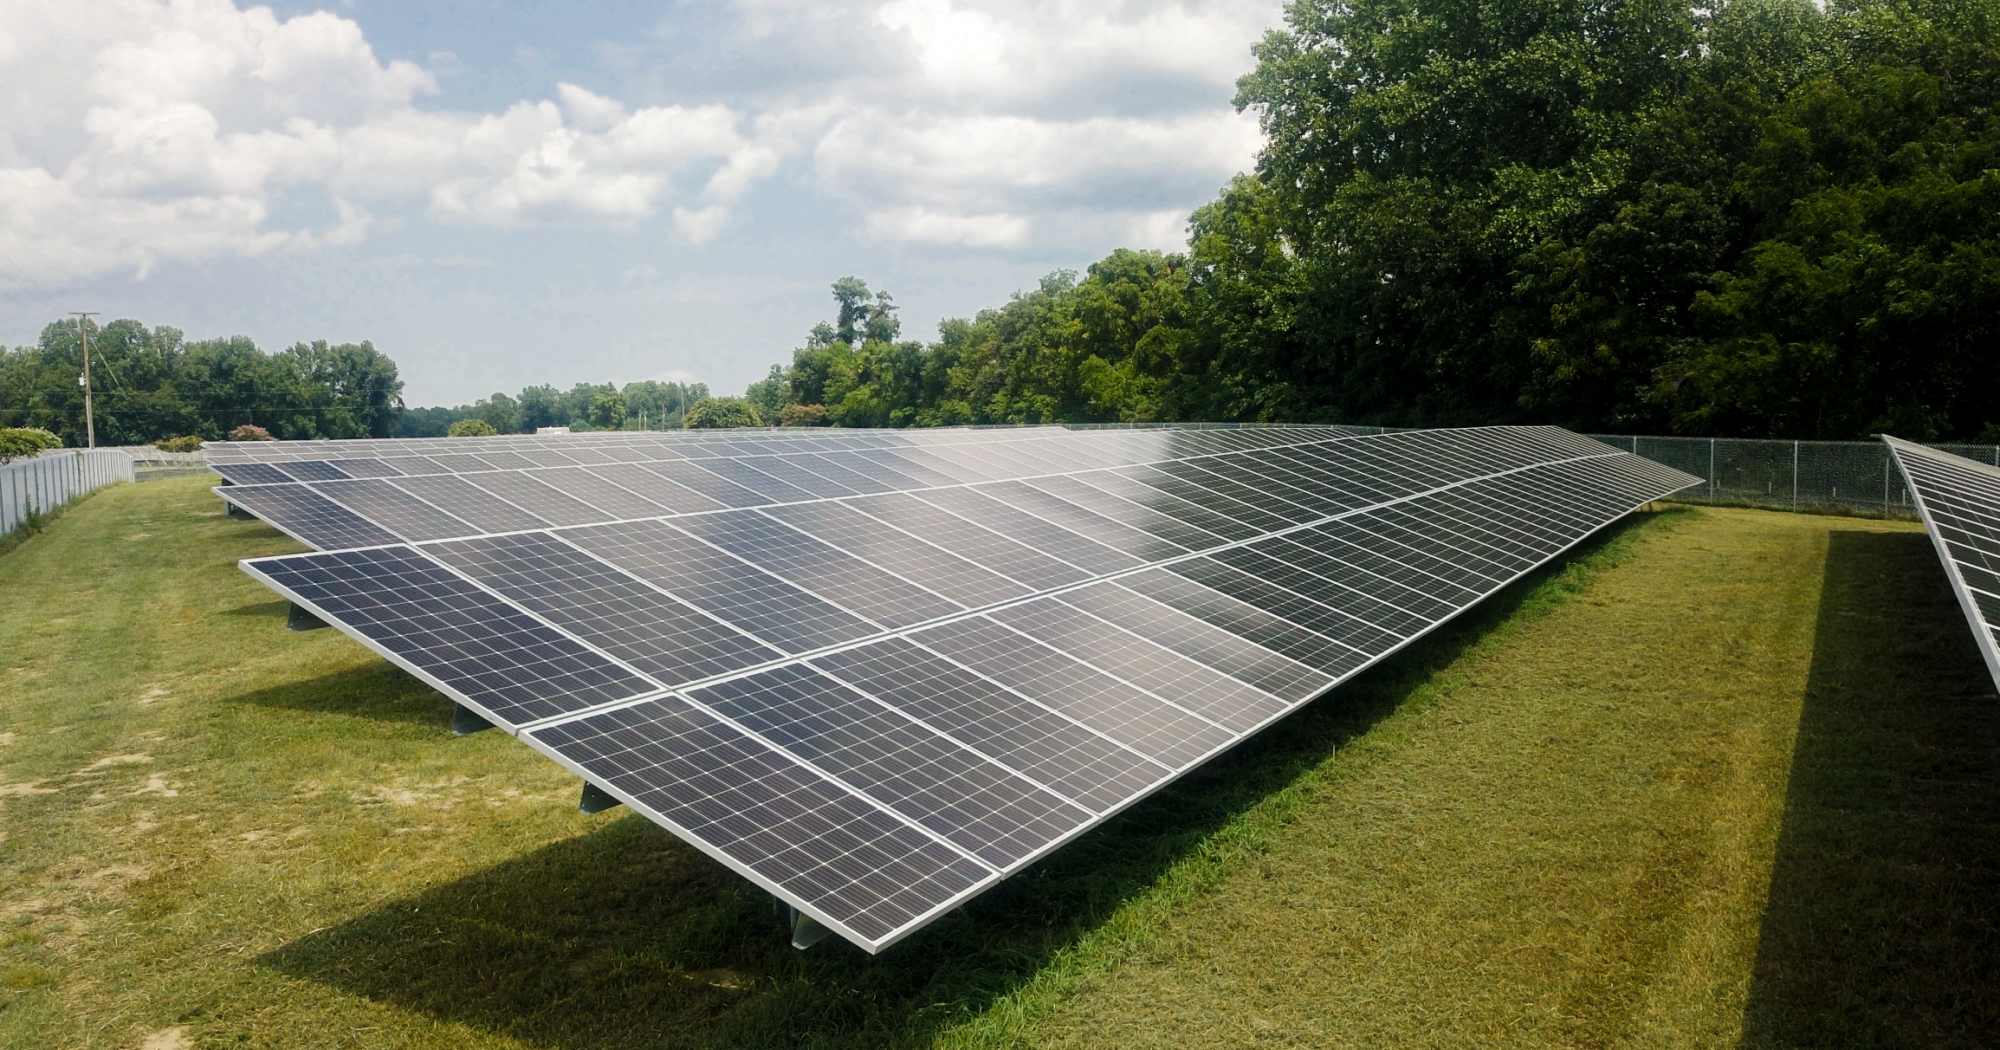 Sun Tribe solar project provides alternative power option for municipalities.